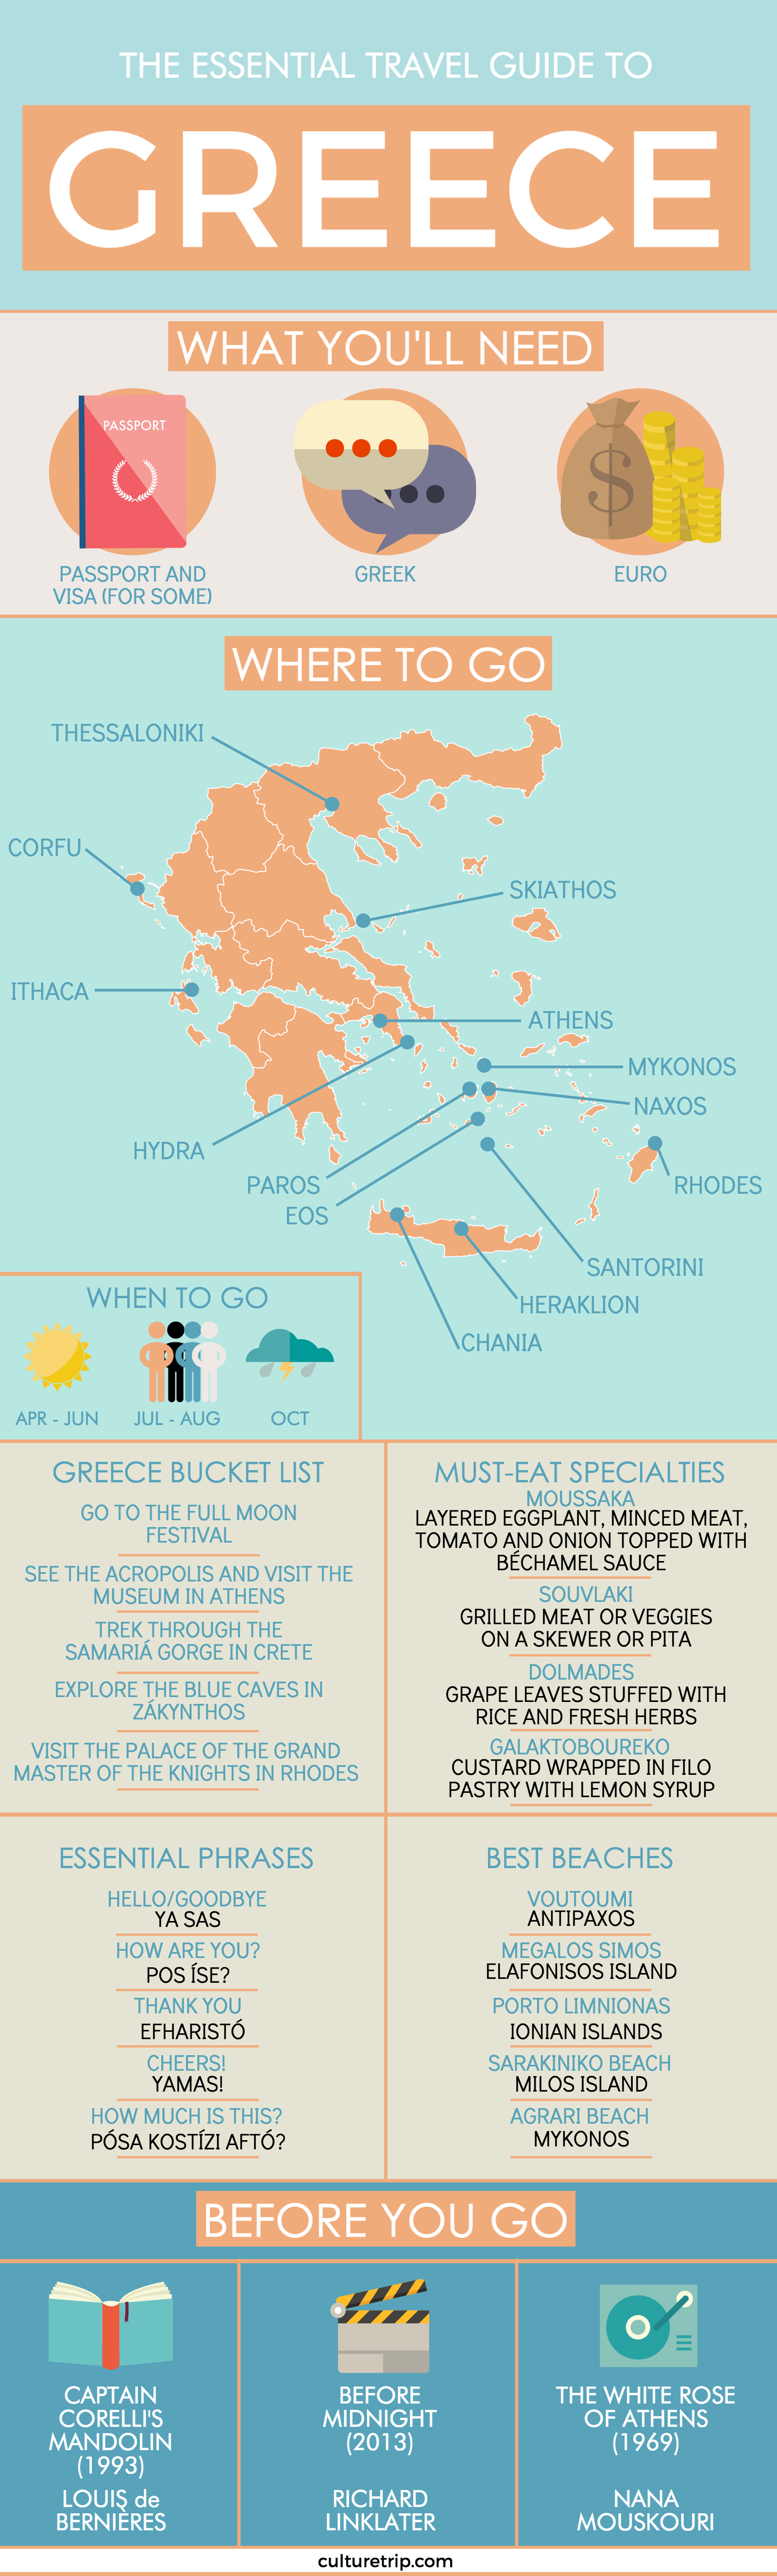 The Essential Travel Guide To Greece (Infographic)